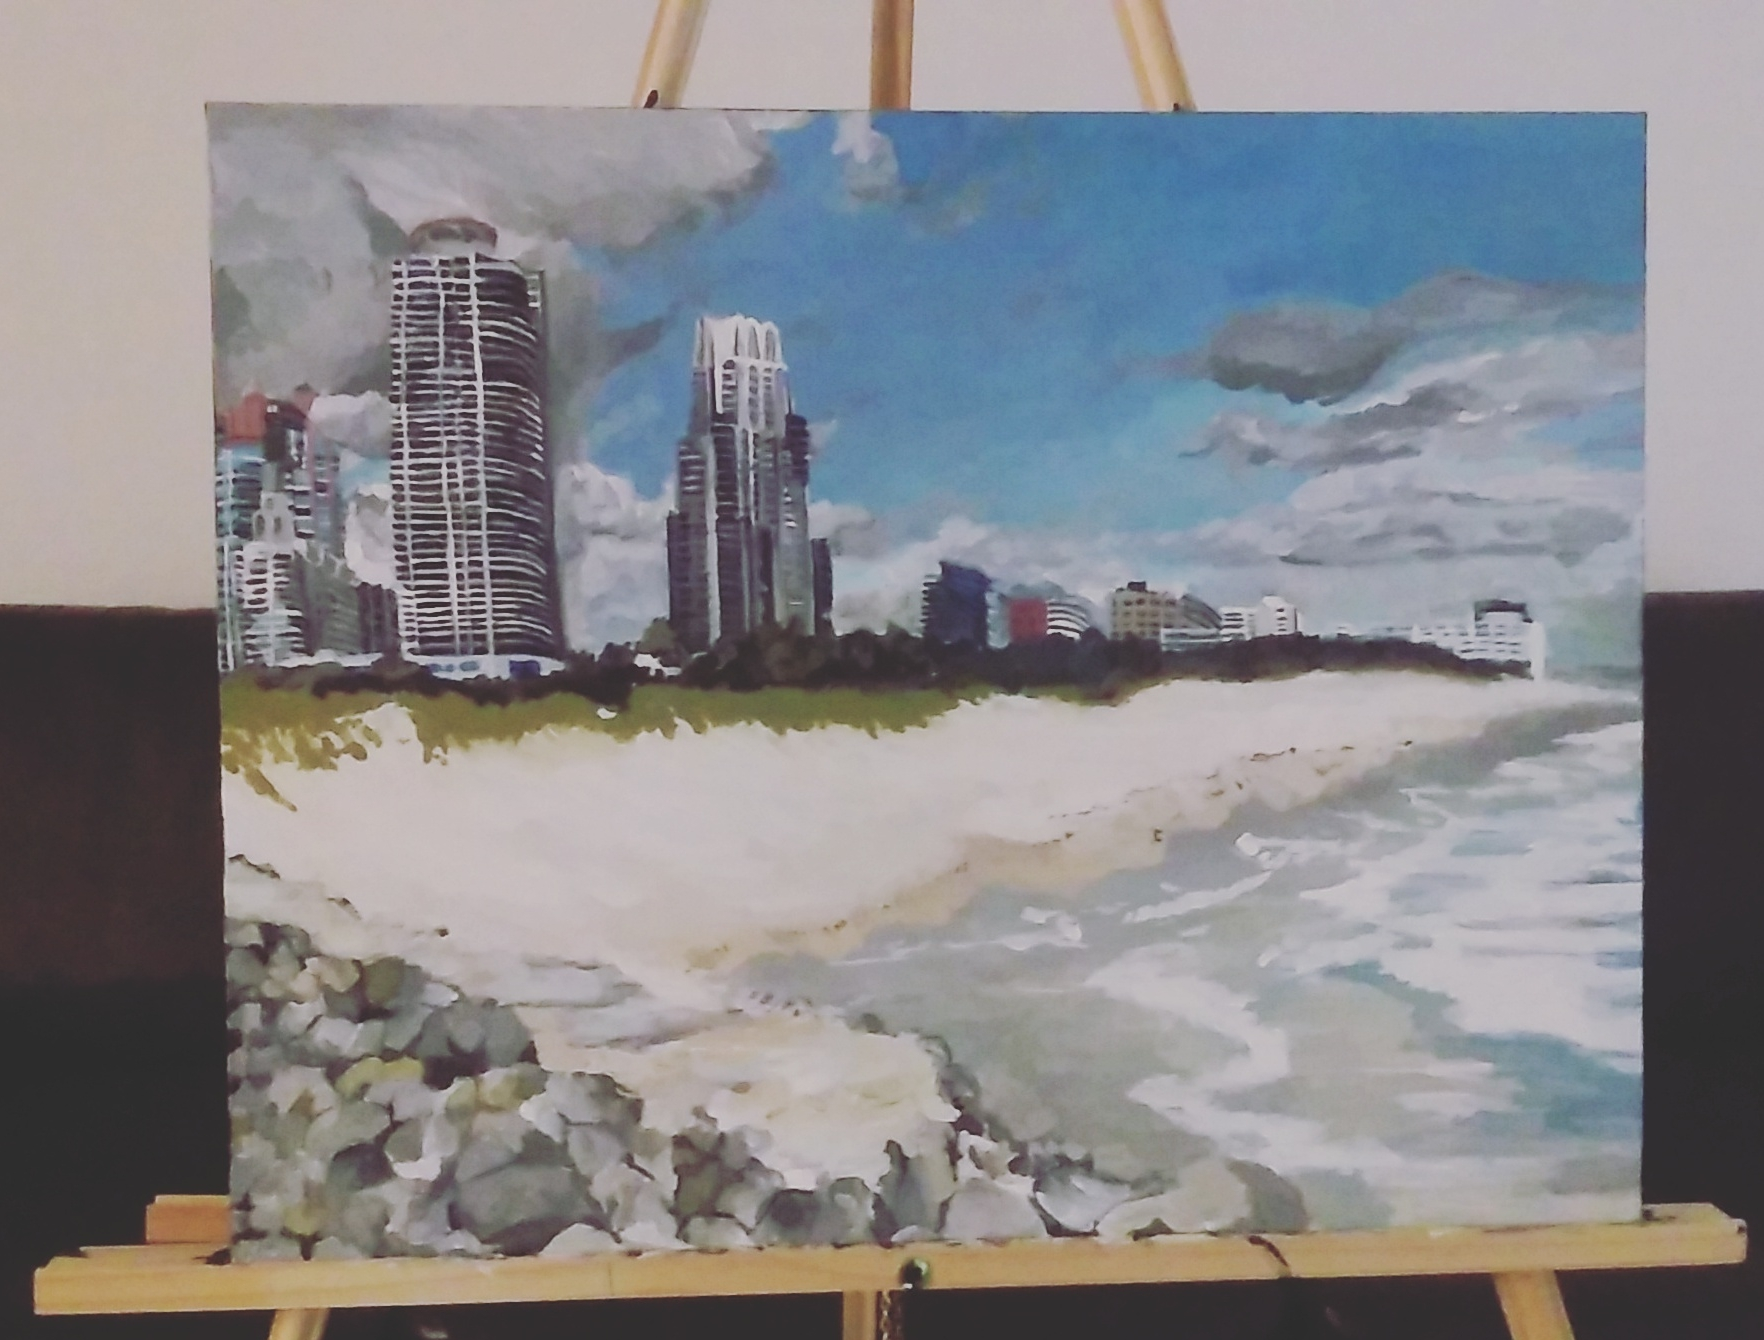 The finish Miami Beach Skyline view I did at home.